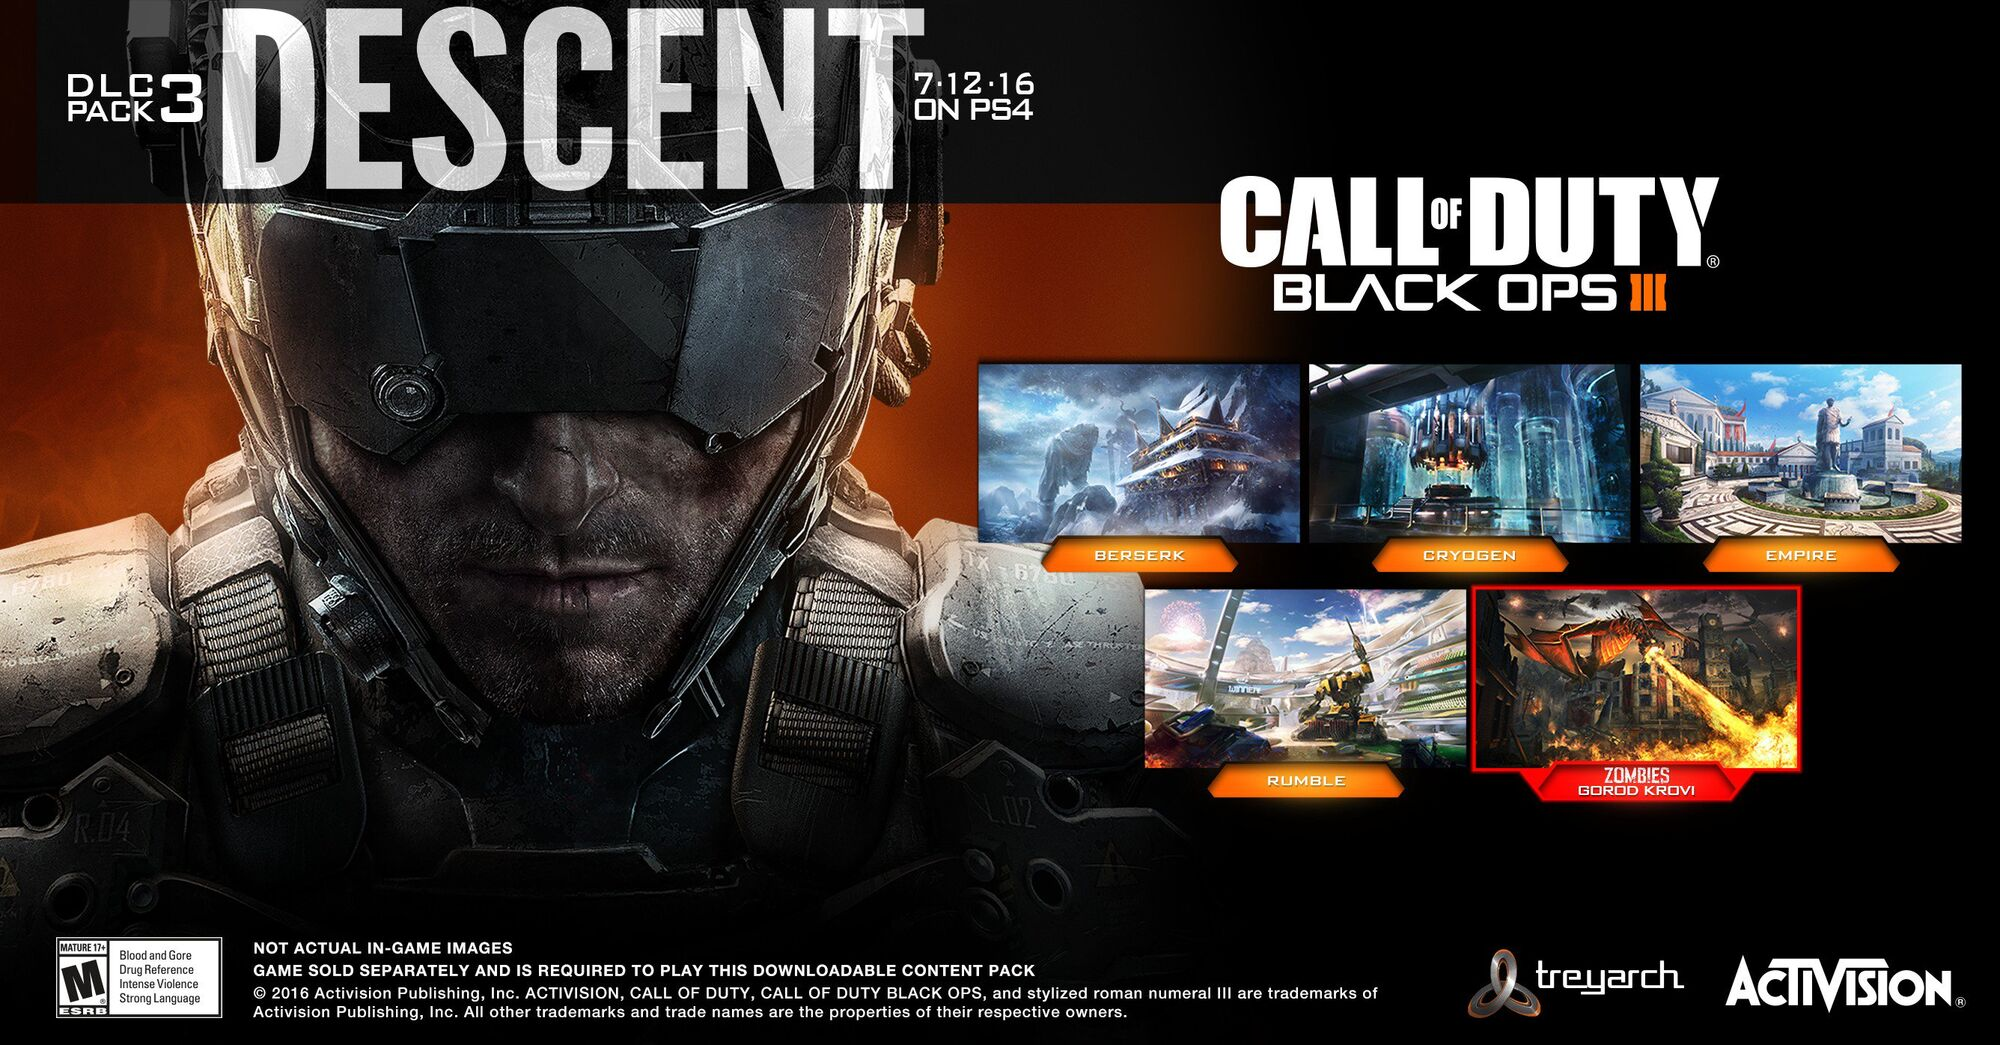 Descent DLC Call Of Duty Wiki FANDOM Powered By Wikia - All of us remastered bo3 zombies maps